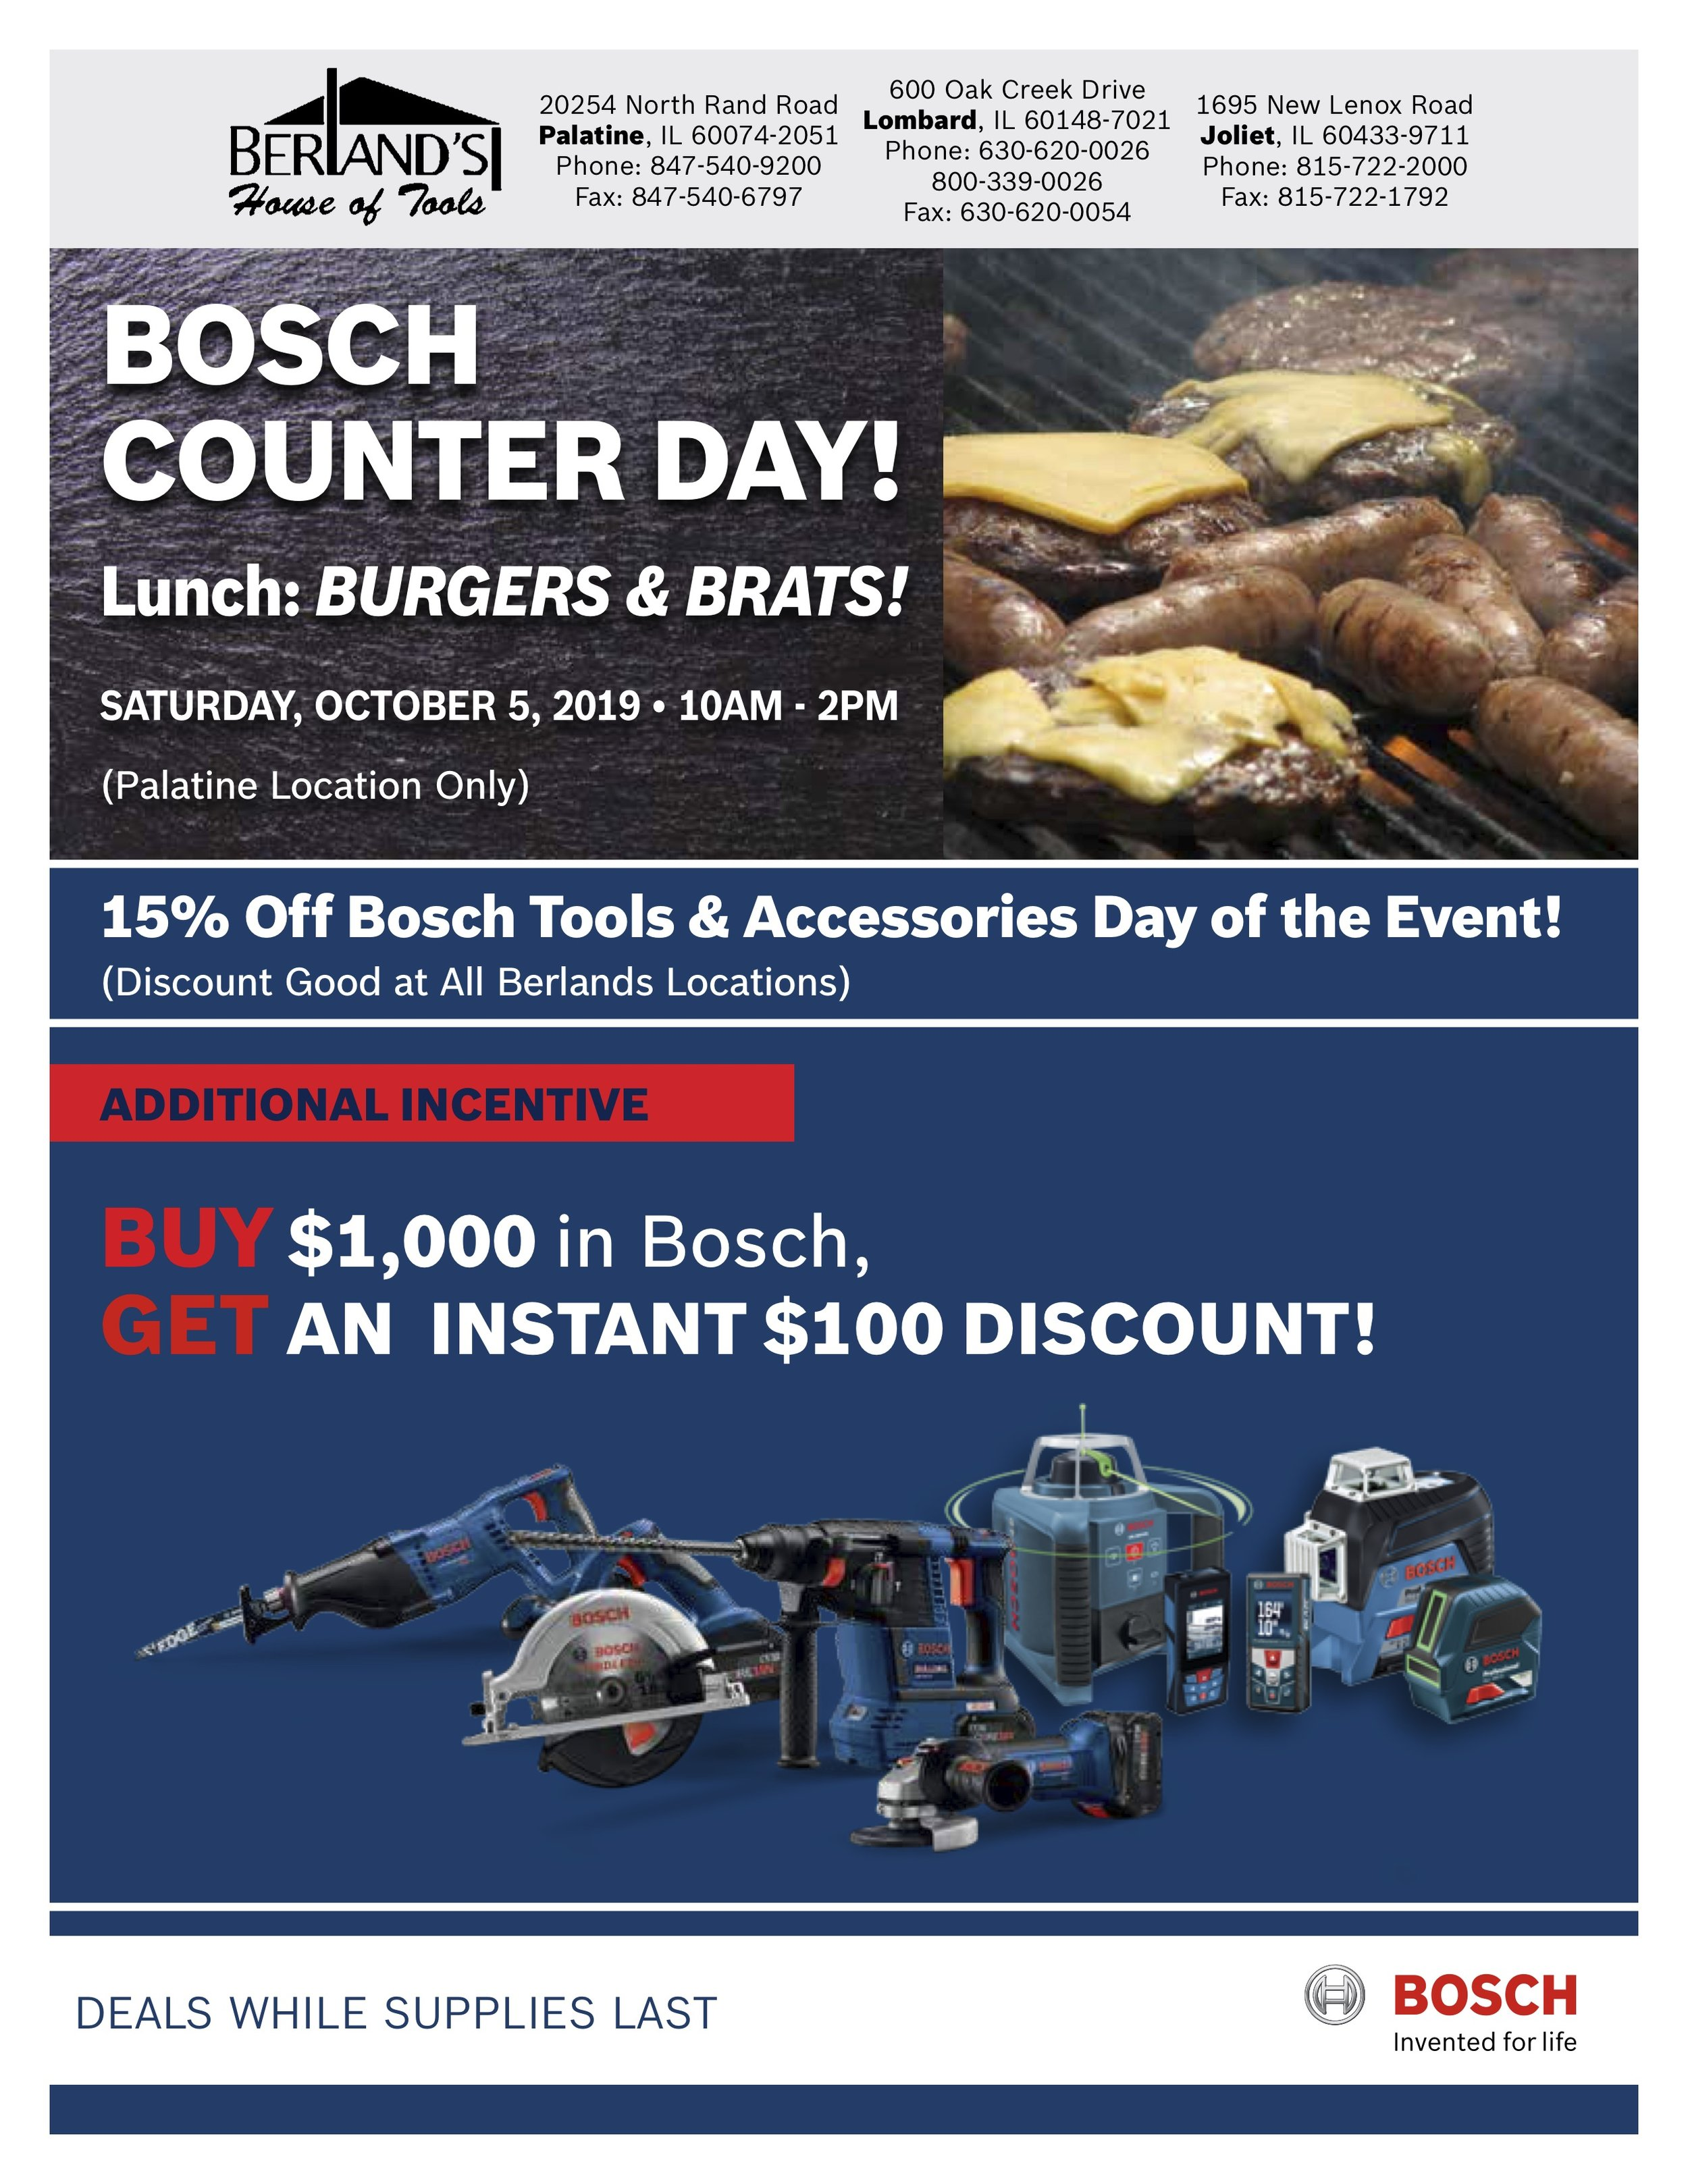 Berland's_Bosch Counter Day_Palatine 0819.jpg